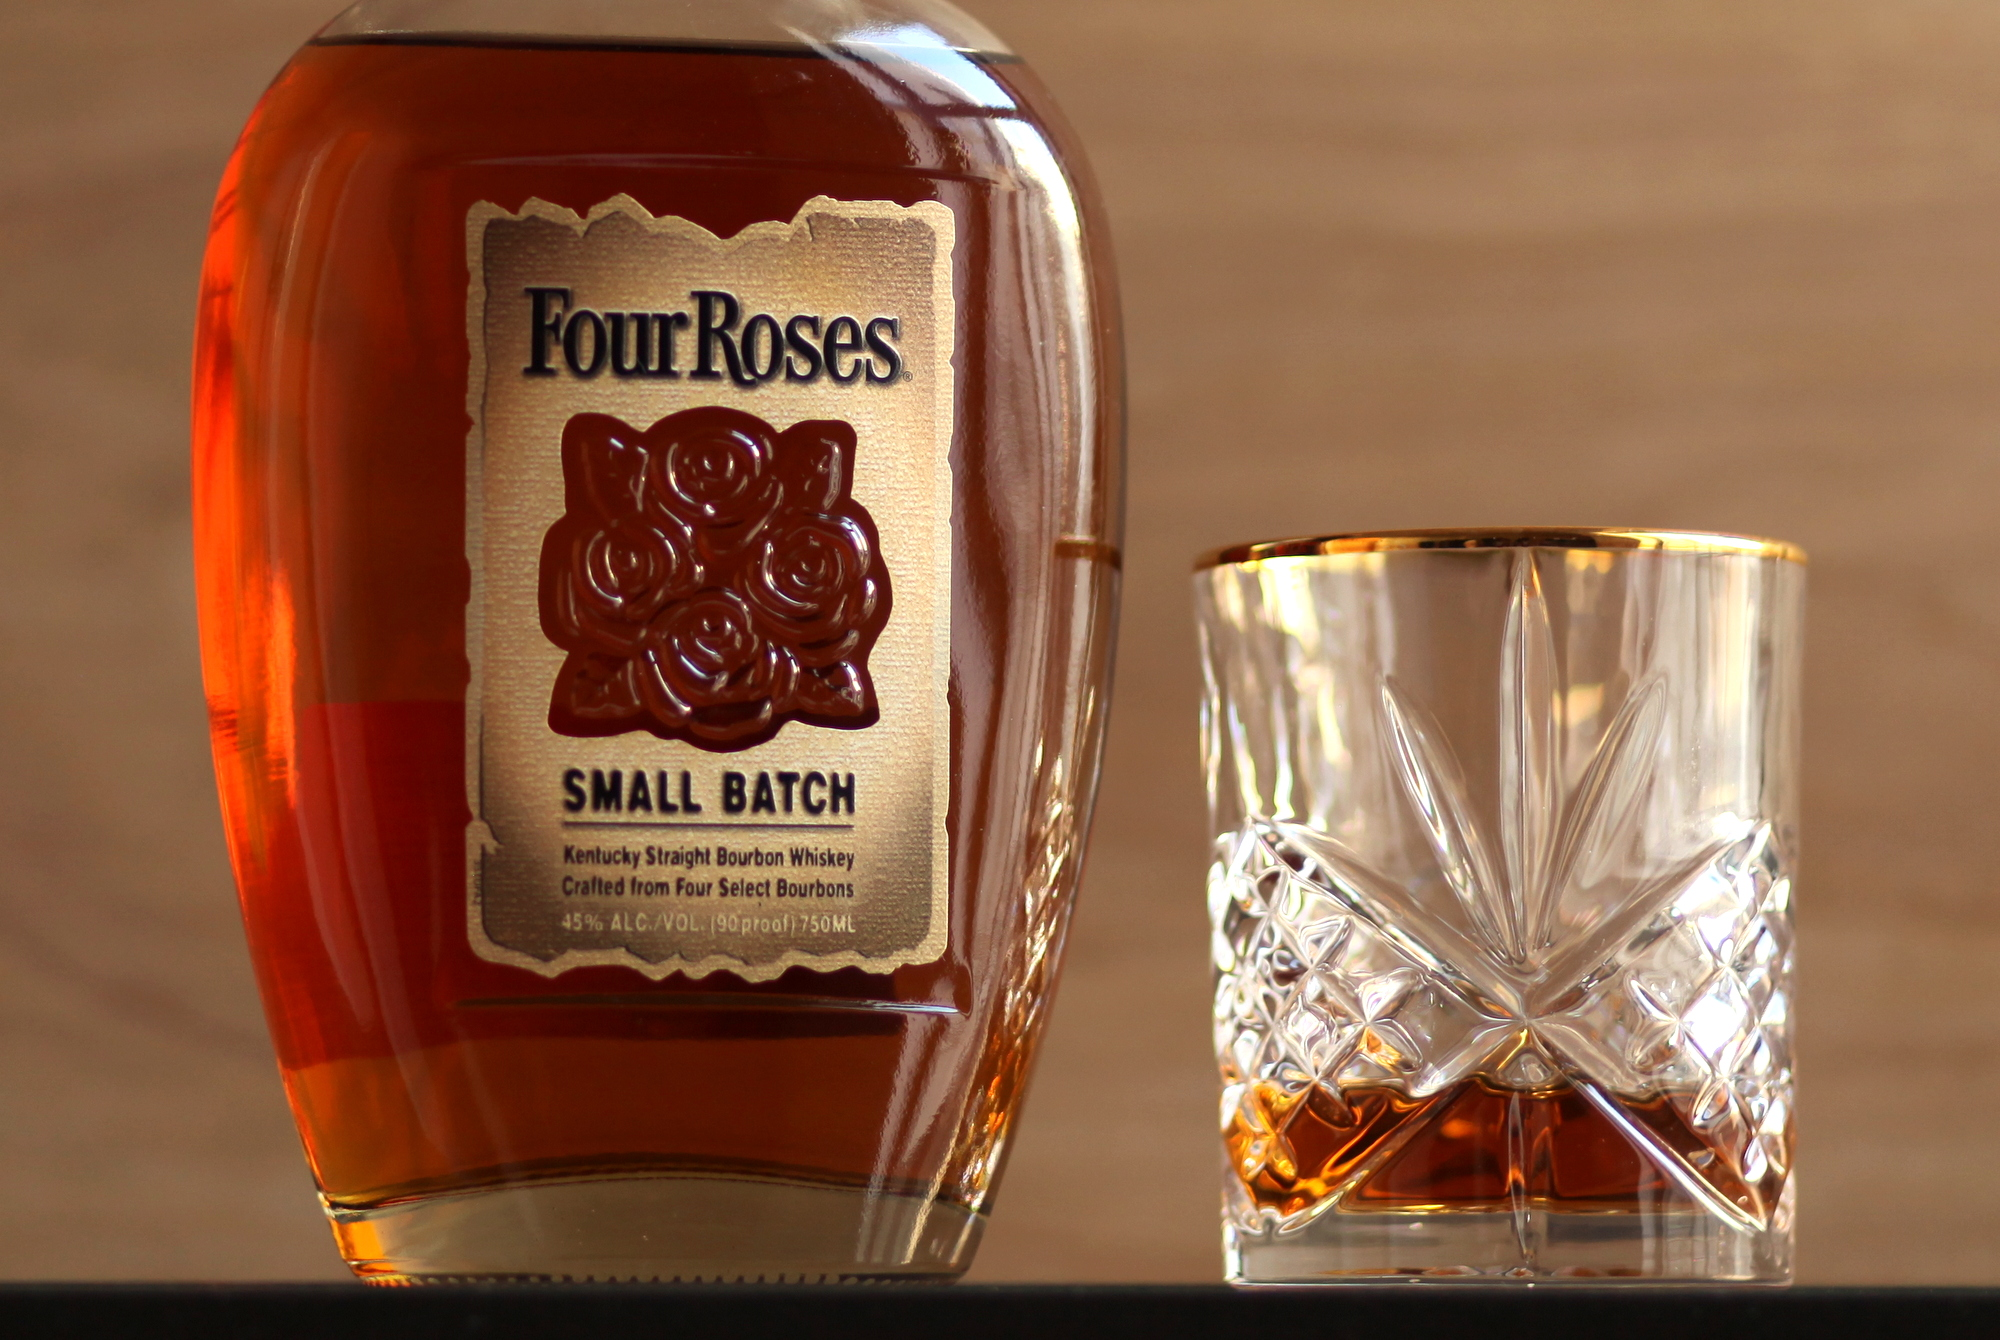 Four Roses Small Batch Whiskey in Glass